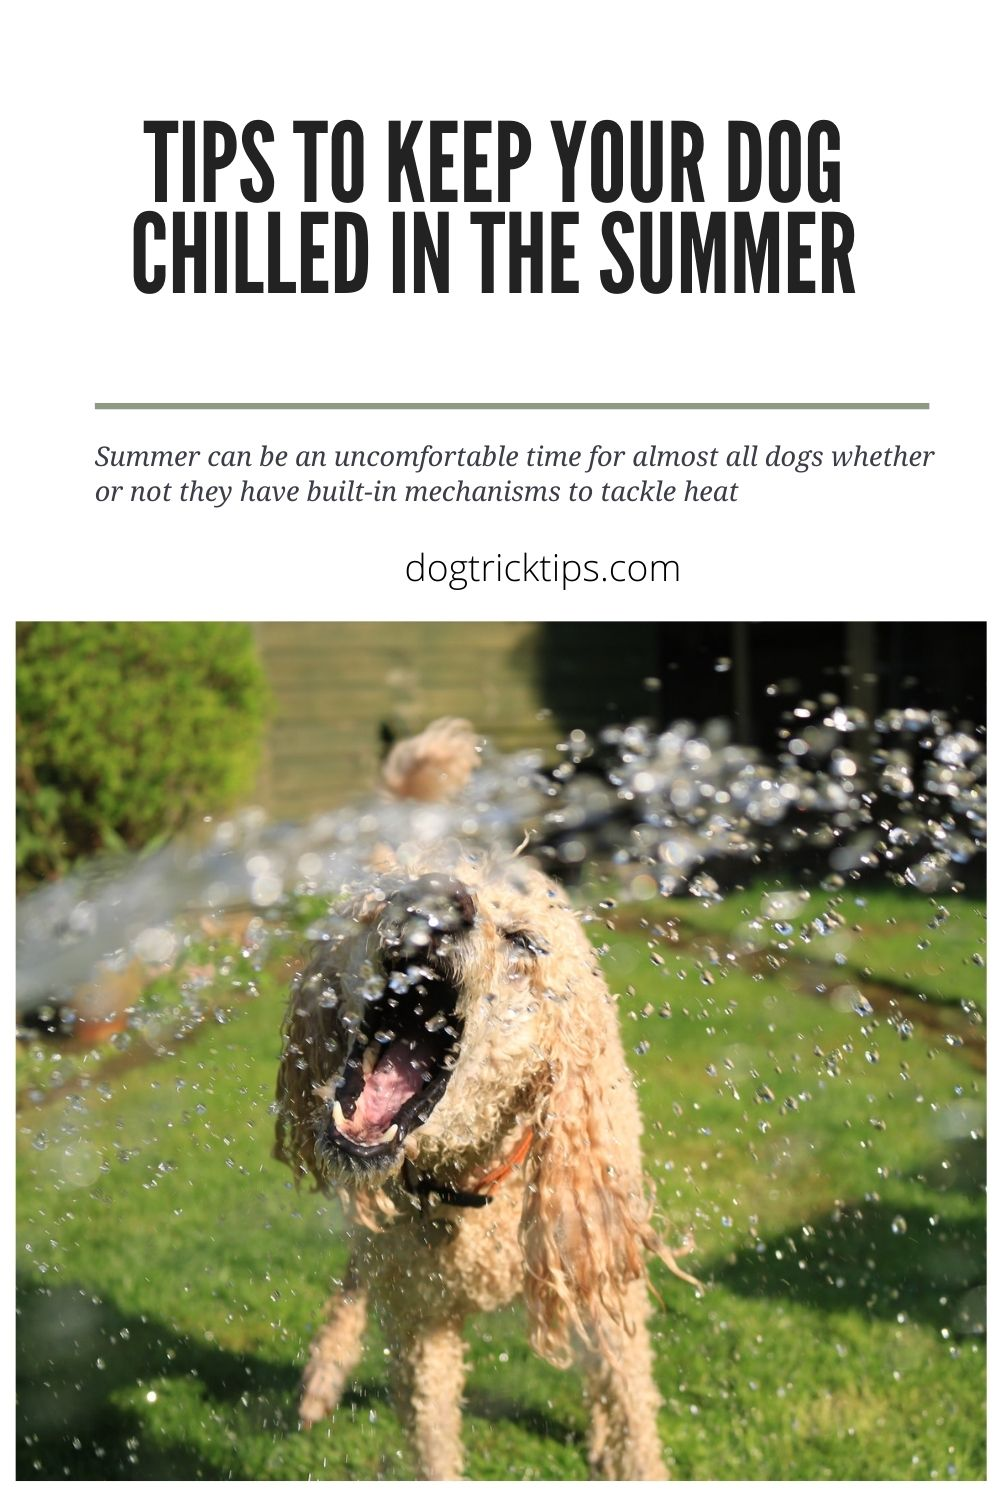 Tips To Keep Your Dog Chilled in the Summer